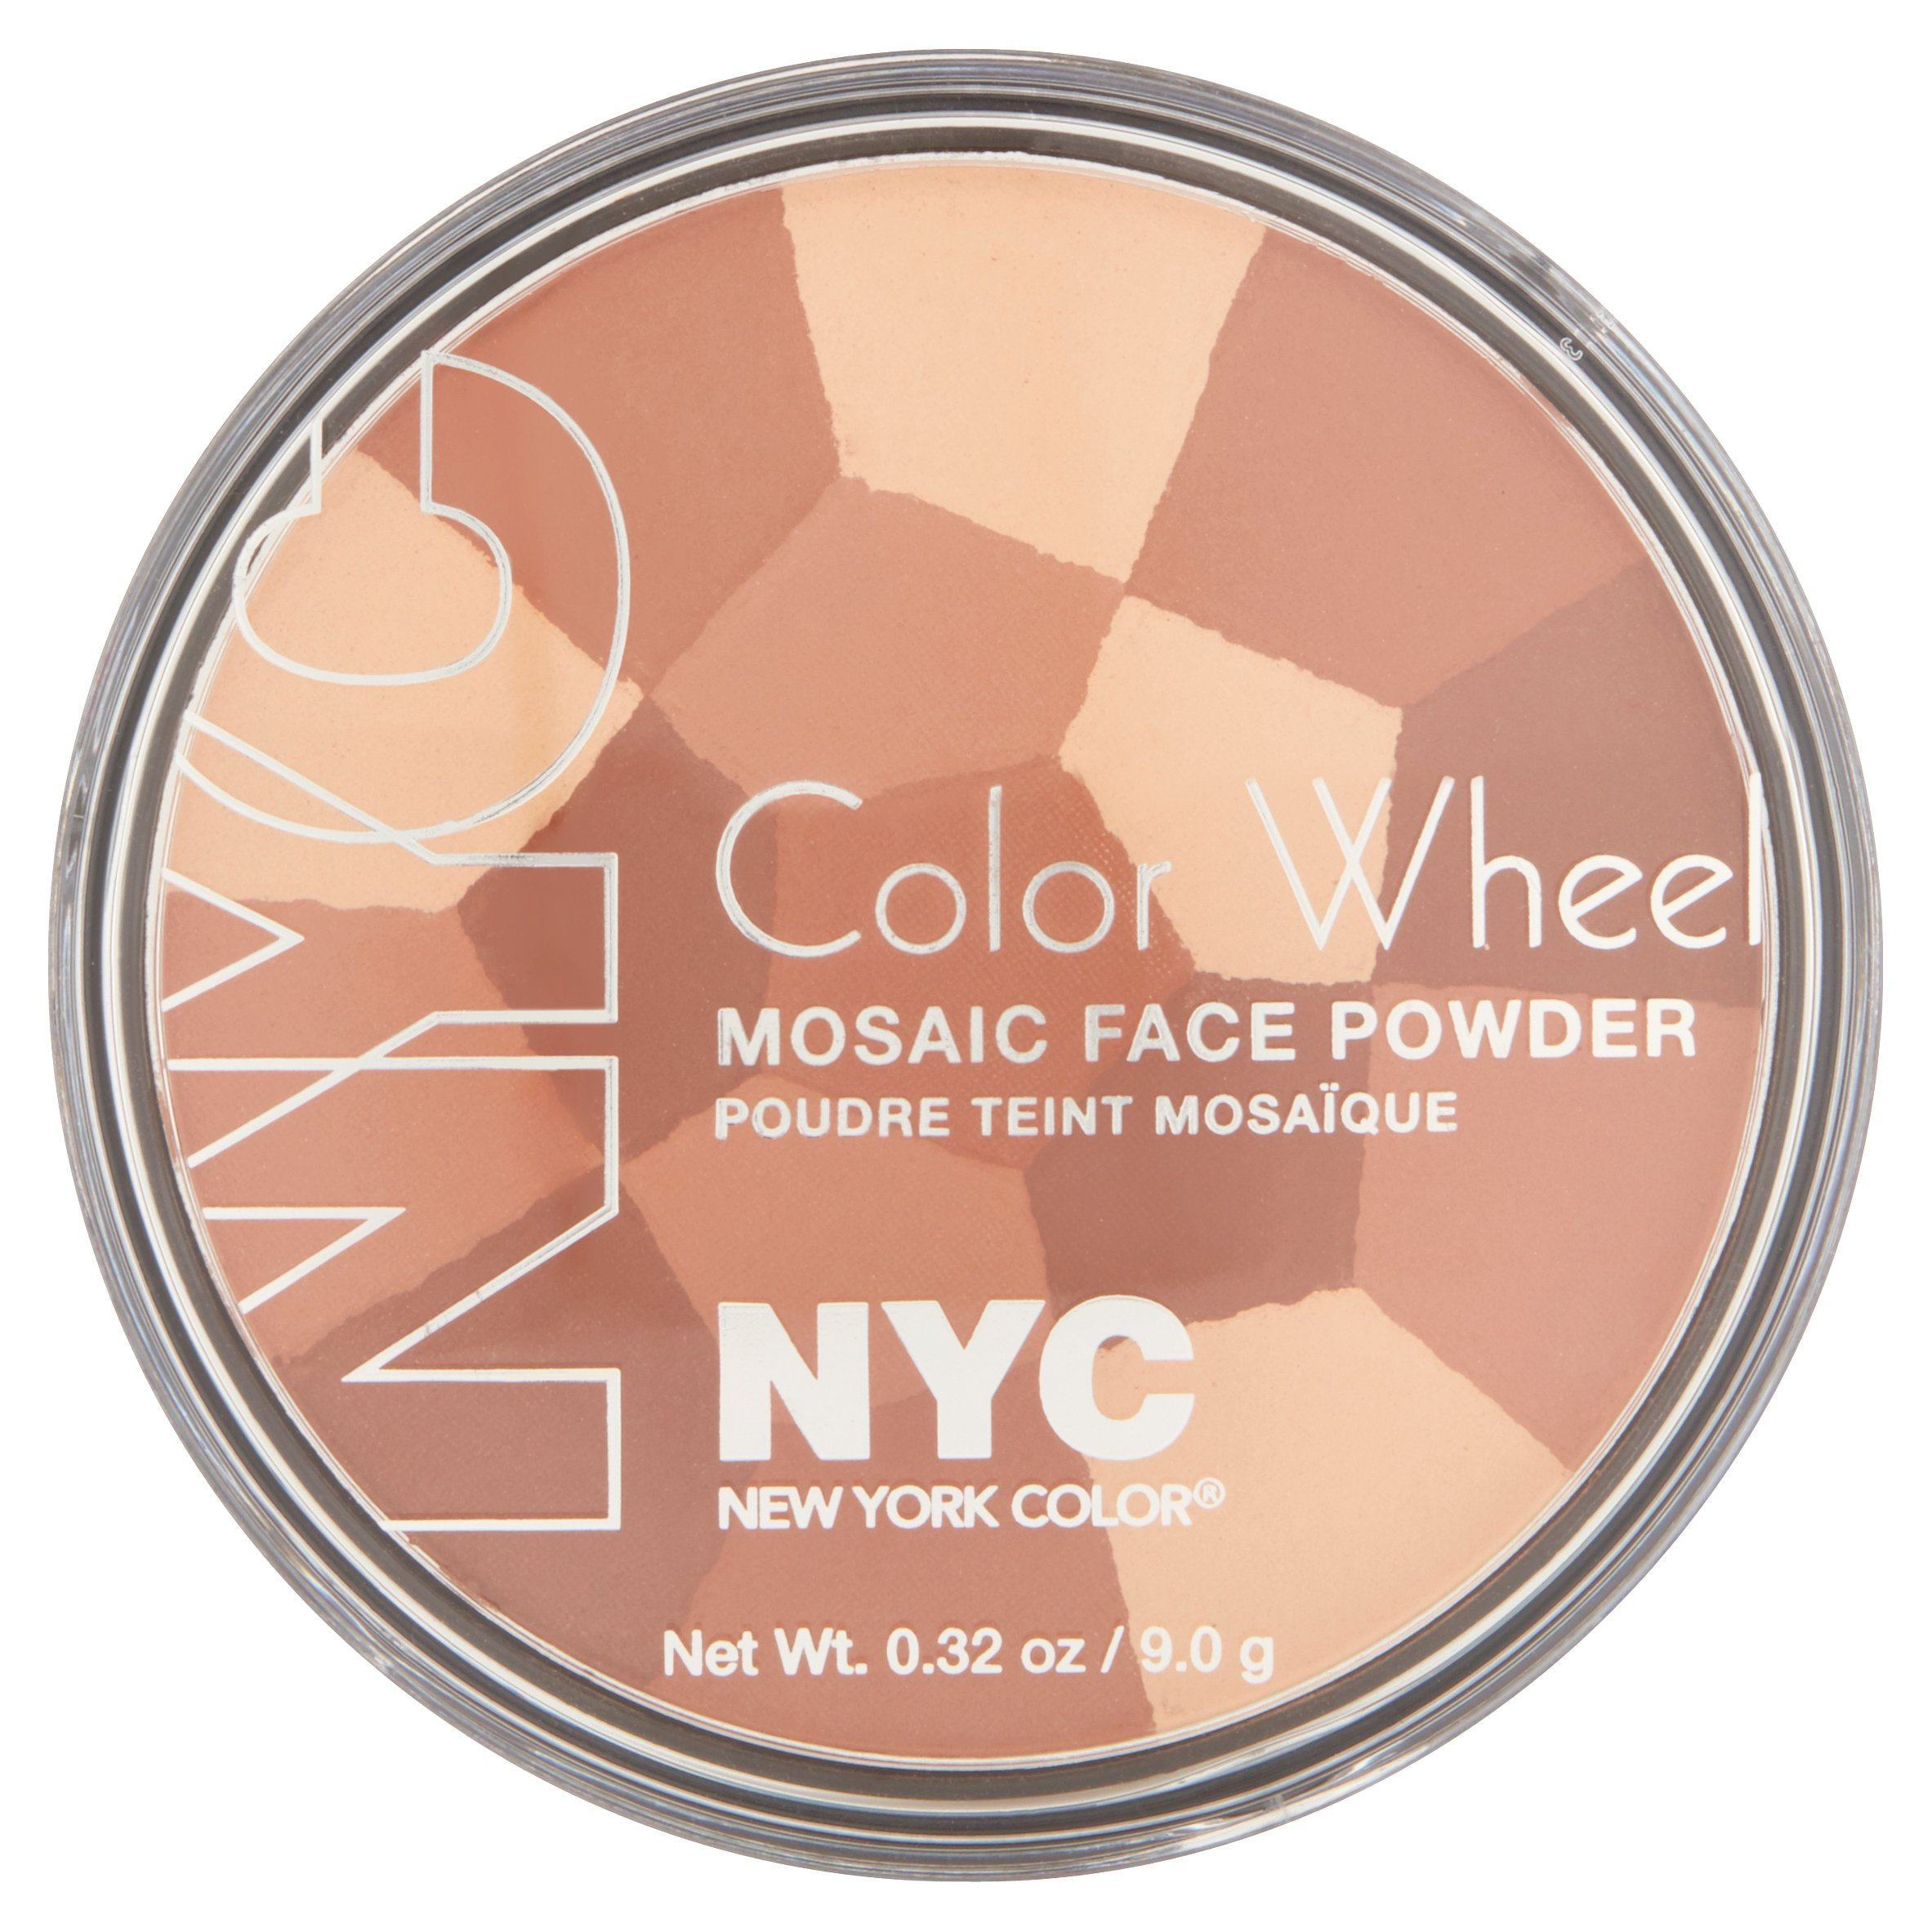 new york color 724a all over bronze glow color wheel mosaic face